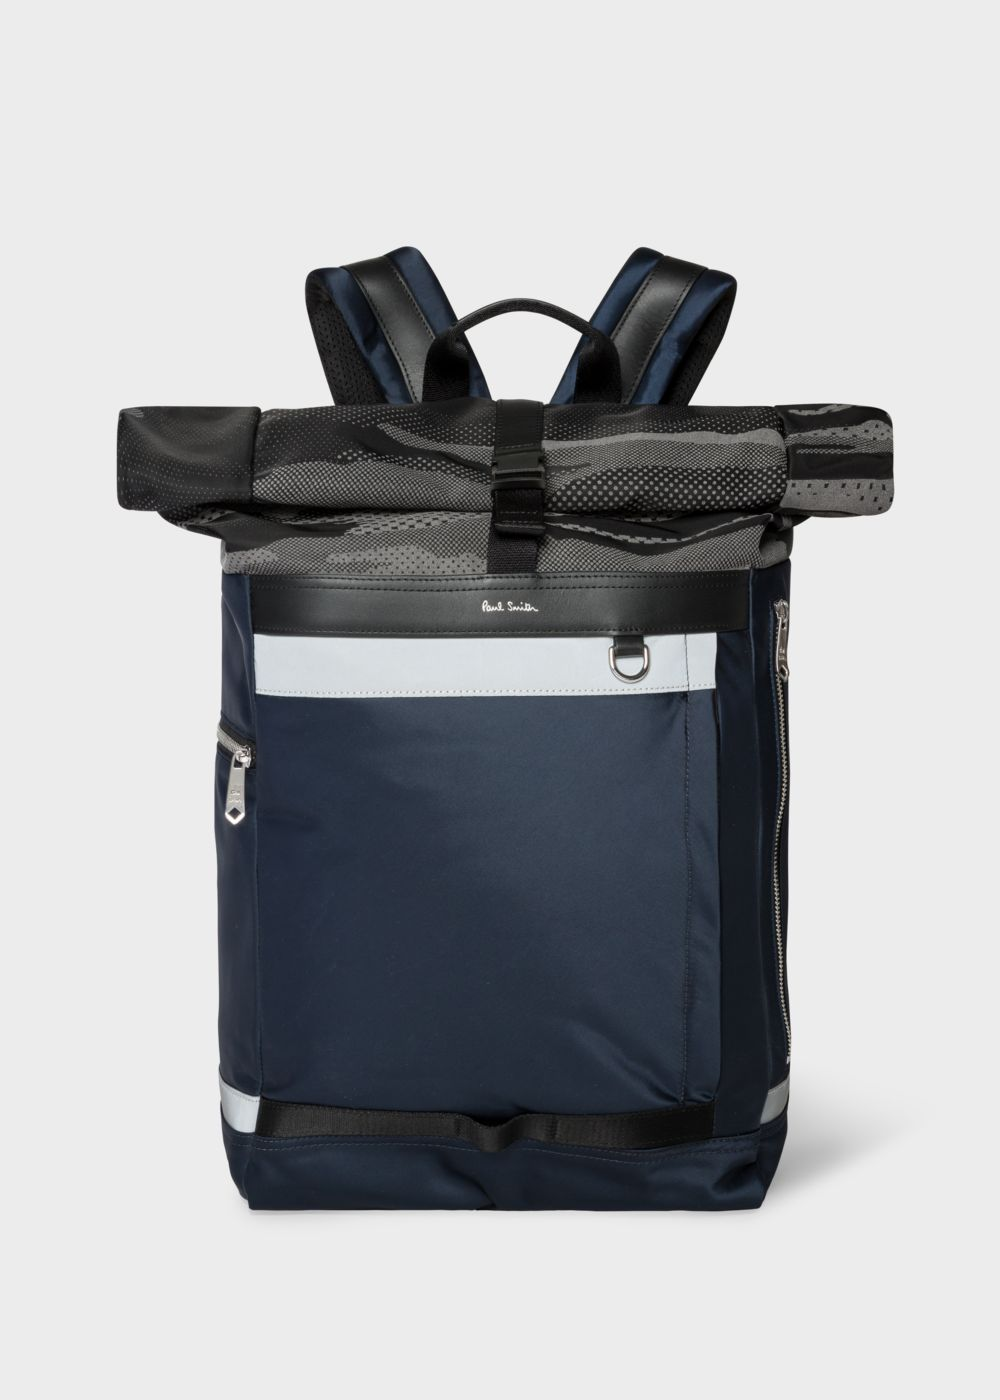 Paul Smith backpack - £395 - Constructed from navy satin fabric with leather trims, this men's backpack features a reflective camo print roll top which is secured with a squeeze clip